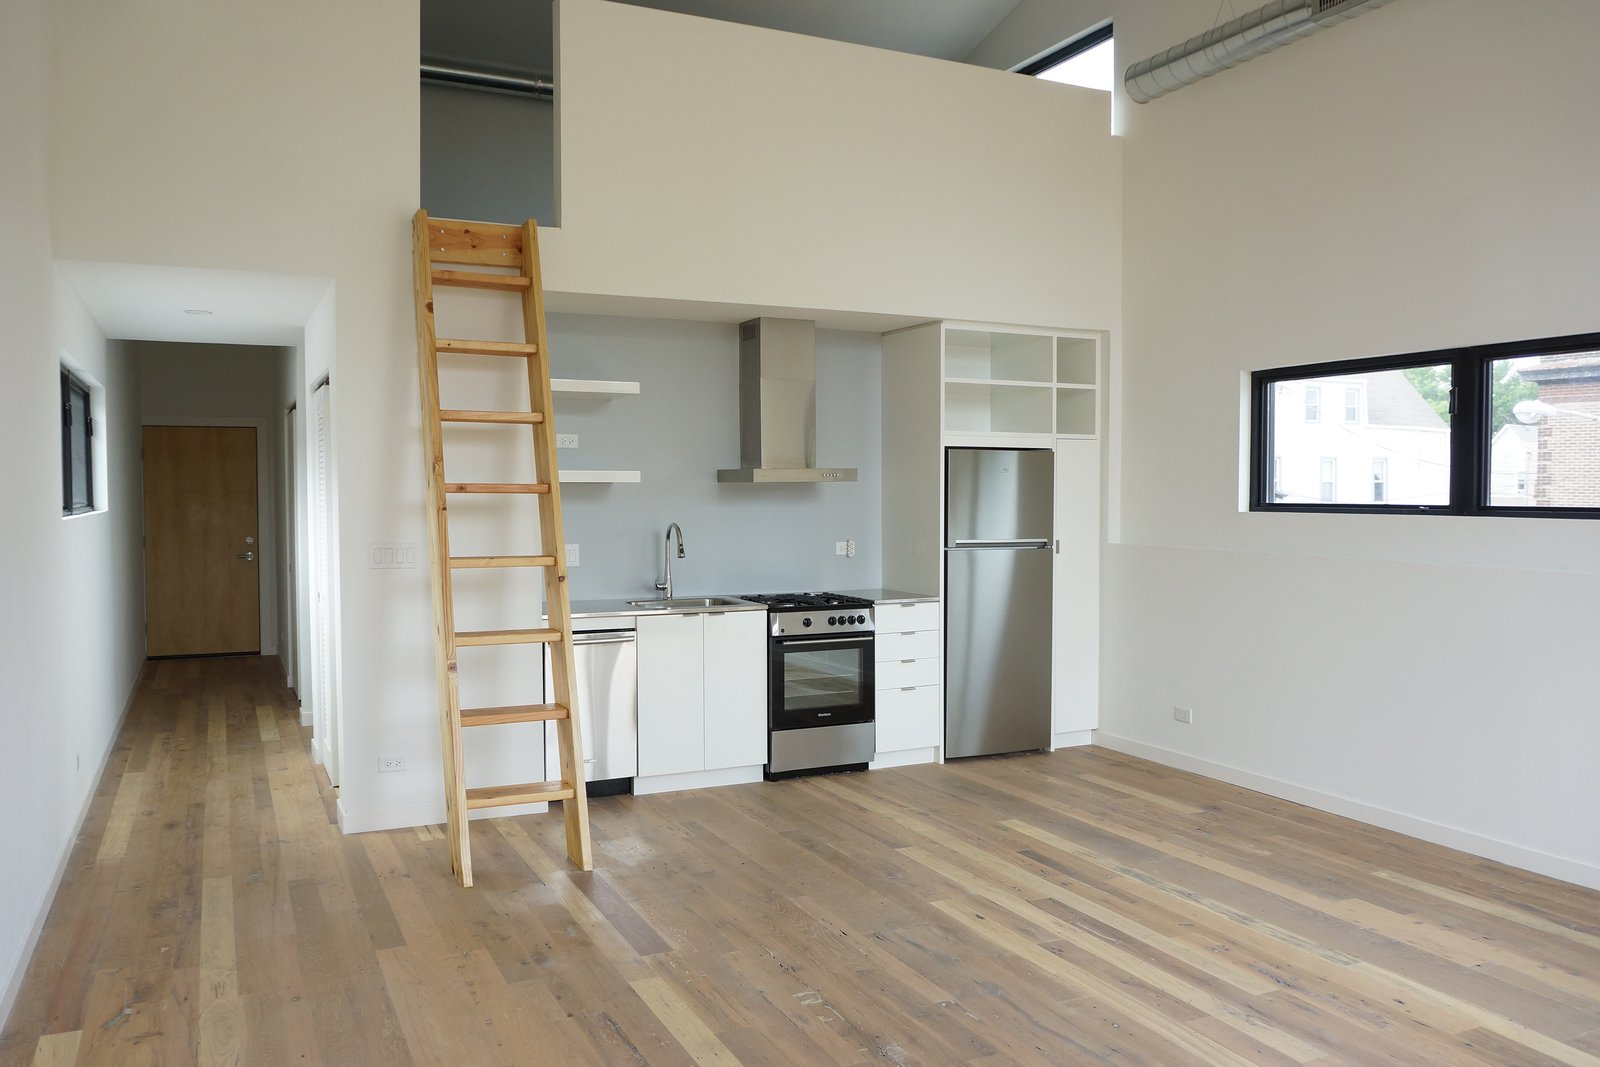 Kitchen, Drop In Sink, Medium Hardwood Floor, Range, White Cabinet, Refrigerator, Range Hood, and Wall Oven The one bedroom loft apartment has a private deck (also clad in cedar), which allows for access to natural light. Custom, modern cabinets optimize kitchen space, and a custom ladder leads to the loft that overlooks the open living space. The reclaimed wood floors that are a mix of oak, walnut, and other hardwoods that have been restored and repurposed from local Illinois barns to provide sustainable and durable flooring.  Photo 22 of 29 in Before & After: A Rundown Bodega in Chicago Is Reimagined Into a Vibrant Live/Work Space